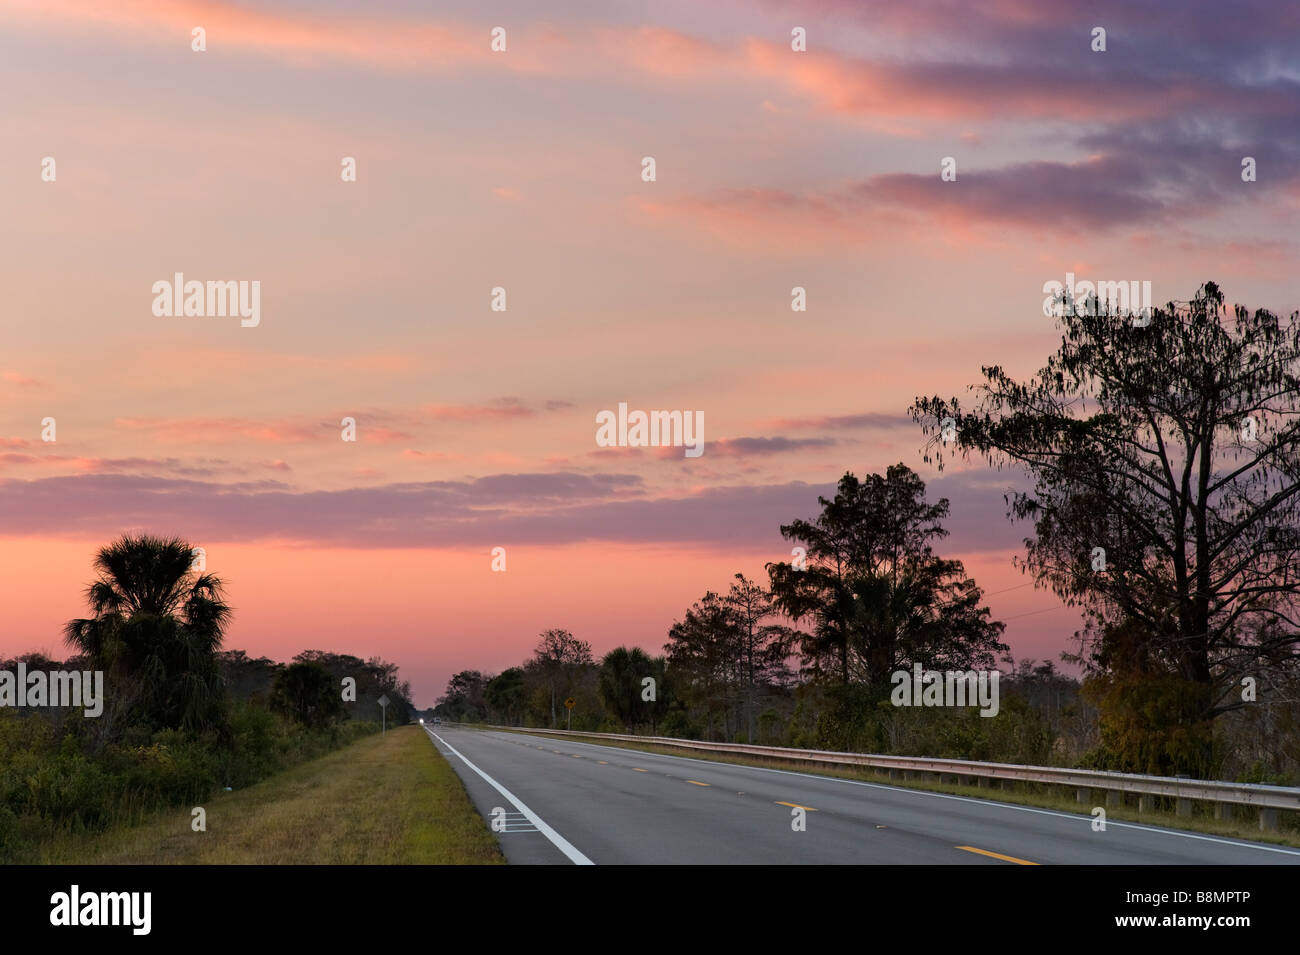 The Tamiami Trail (US 41) at sunset in the Big Cypress National Preserve, Florida Everglades, Florida, USA - Stock Image